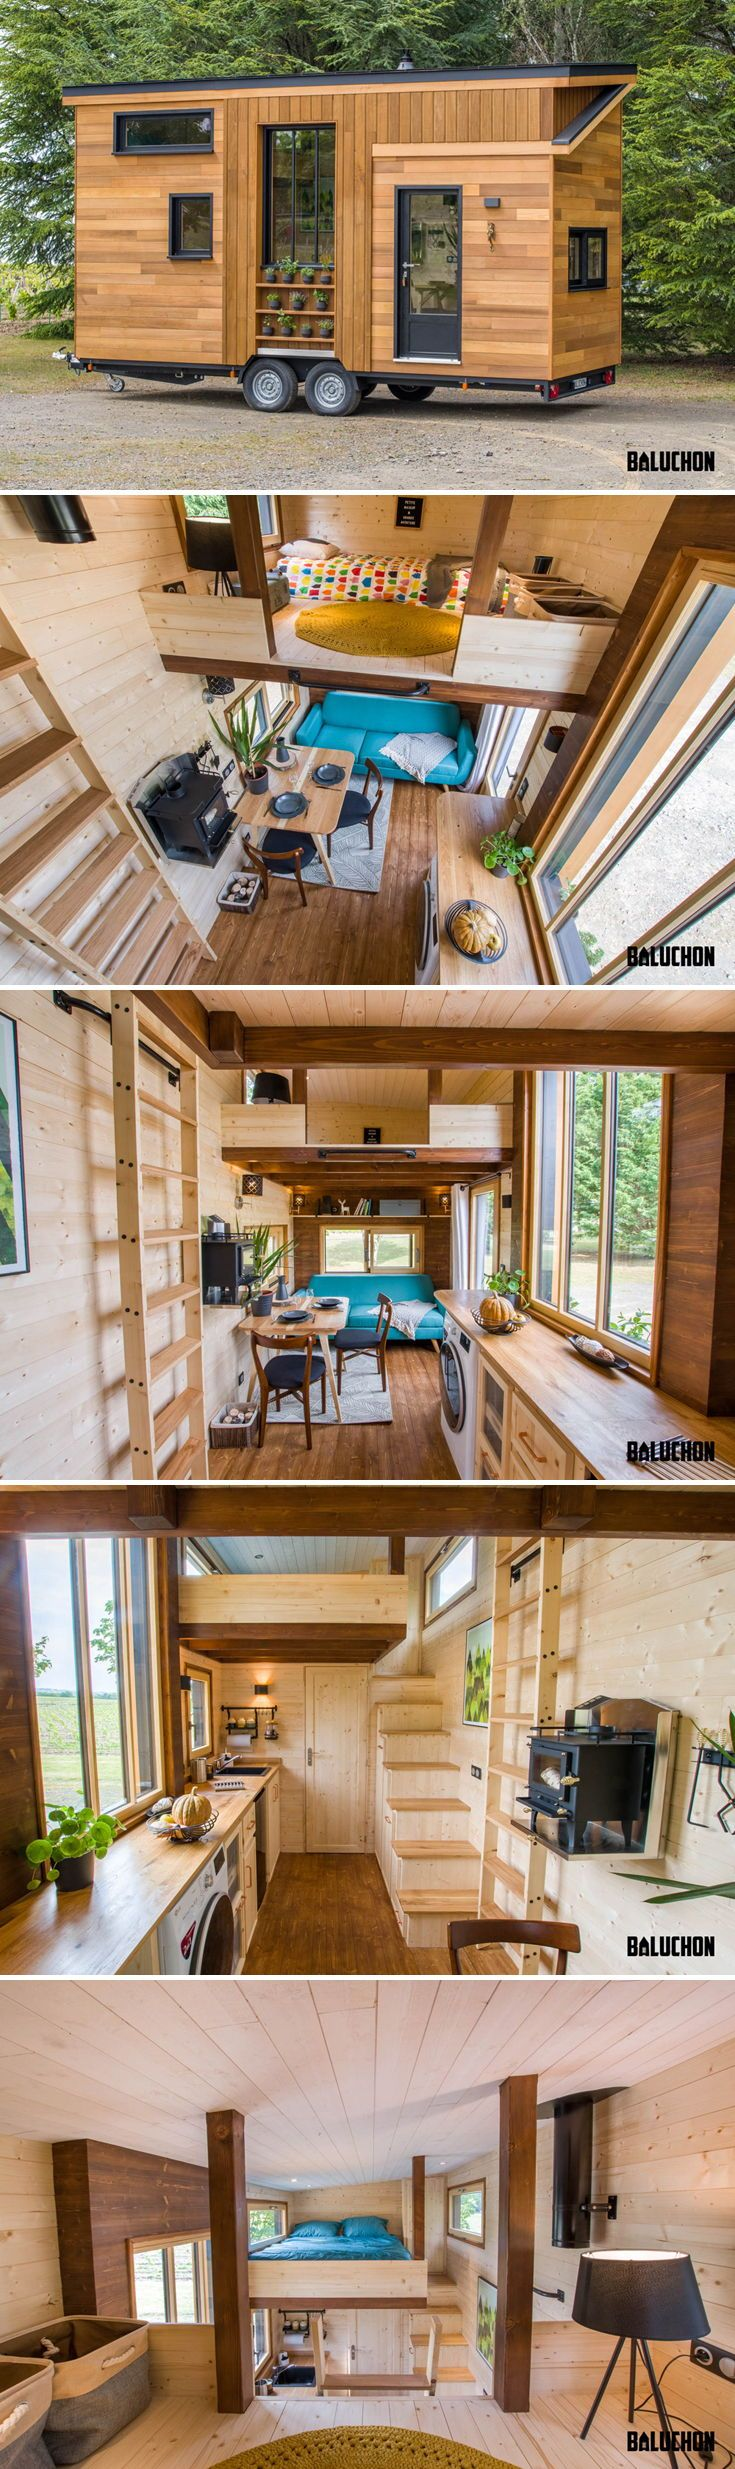 Astrild by Baluchon - Tiny Living #tinyhouses